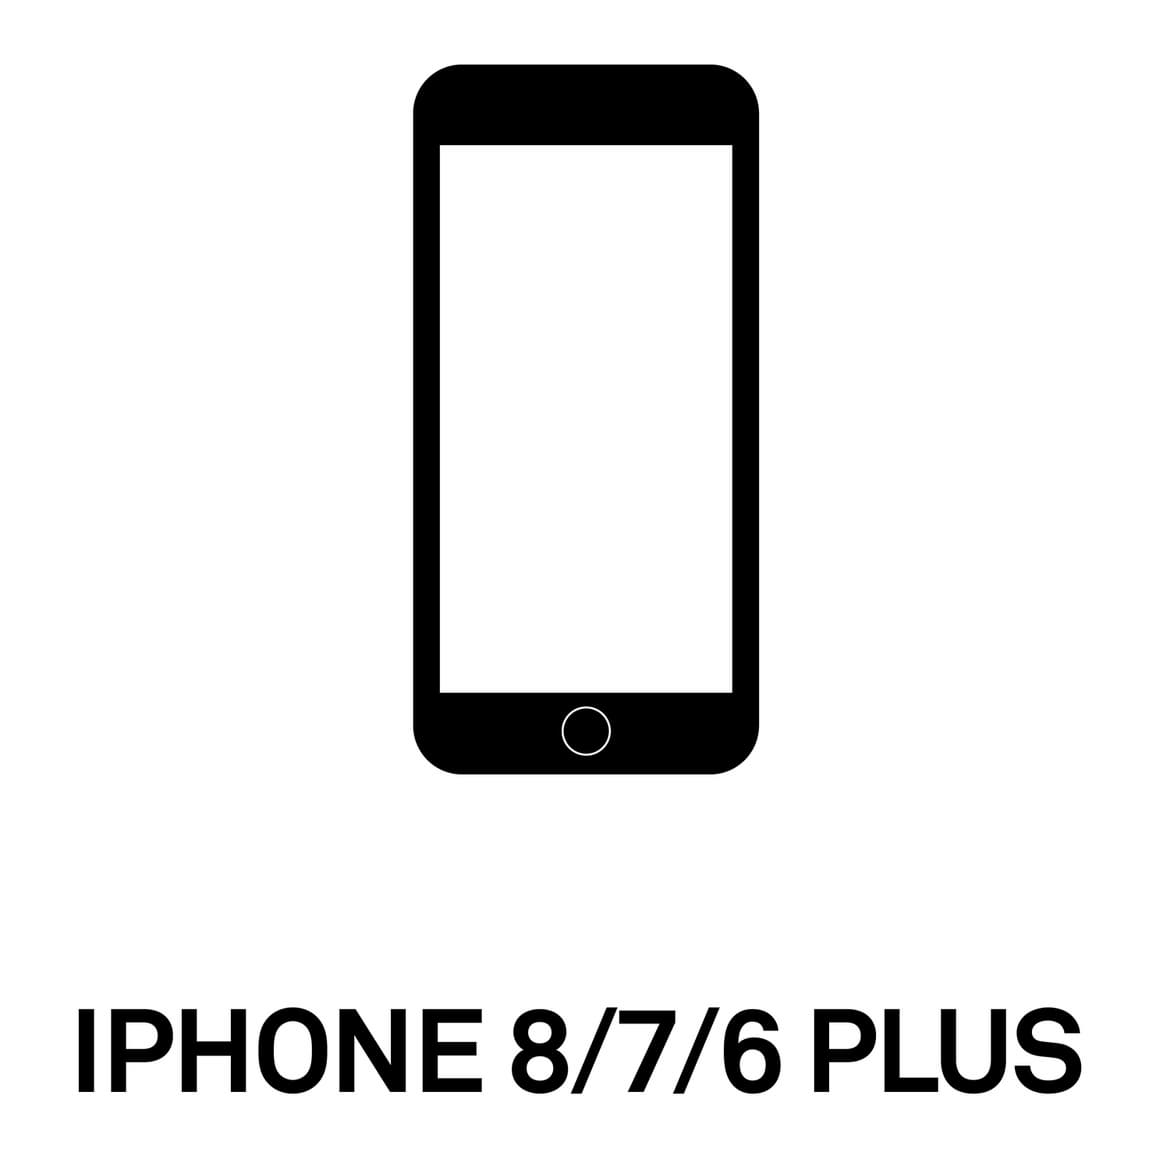 icon_iphone8_7_6s_plus.png